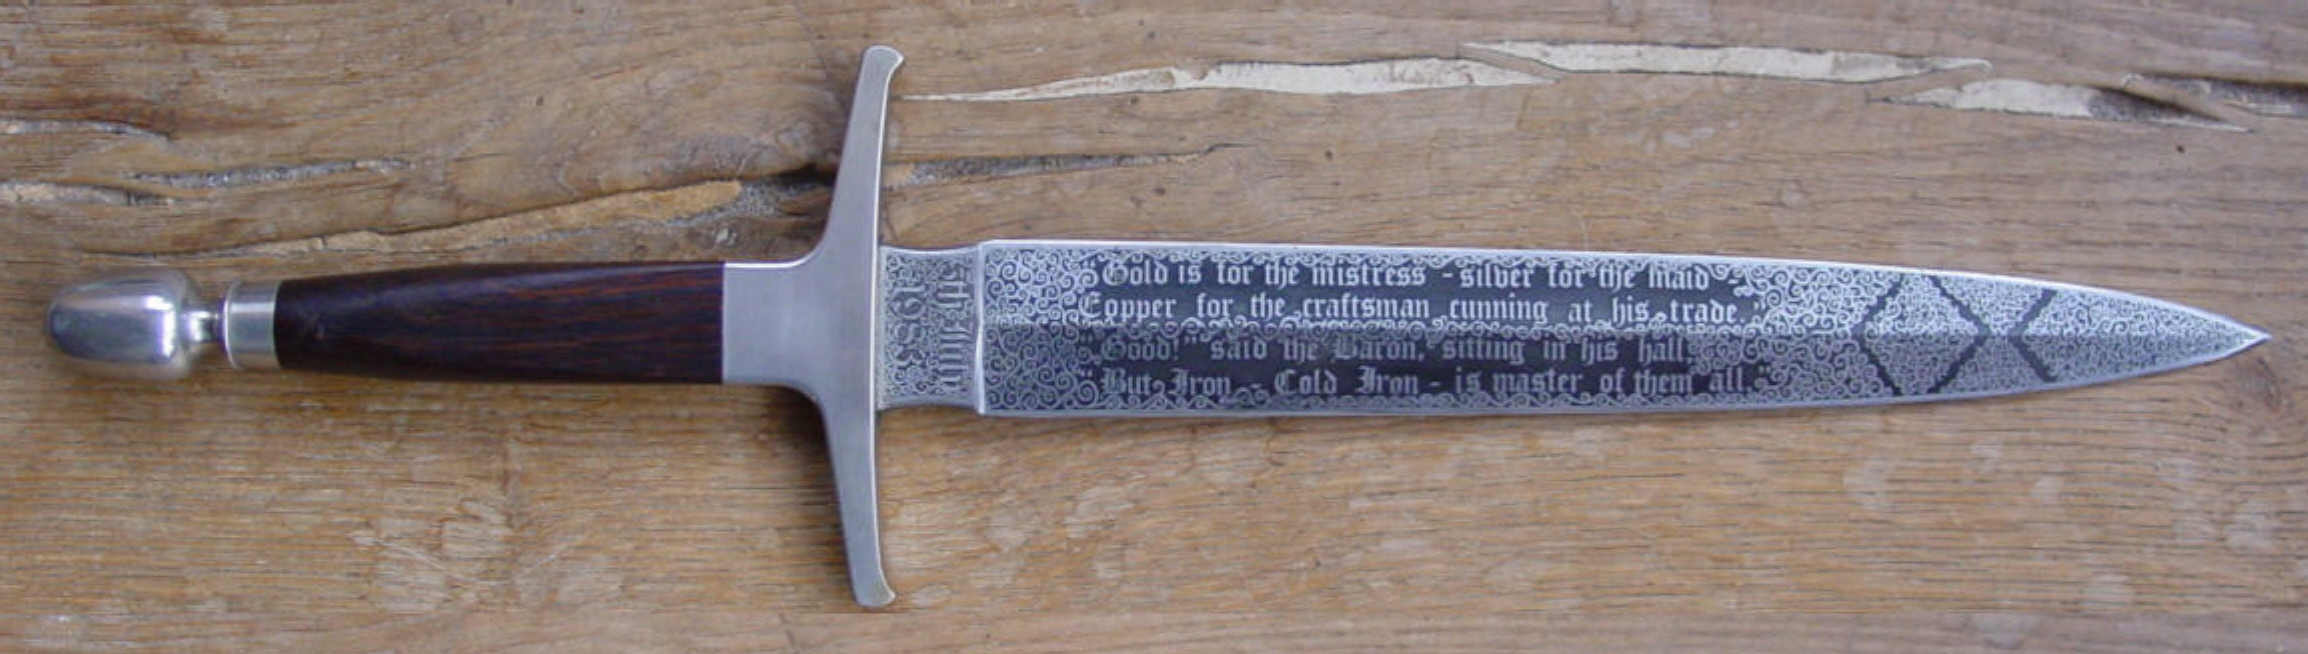 Click image for larger version.  Name:Jim's dagger  reduced.jpg Views:8 Size:133.6 KB ID:3704199